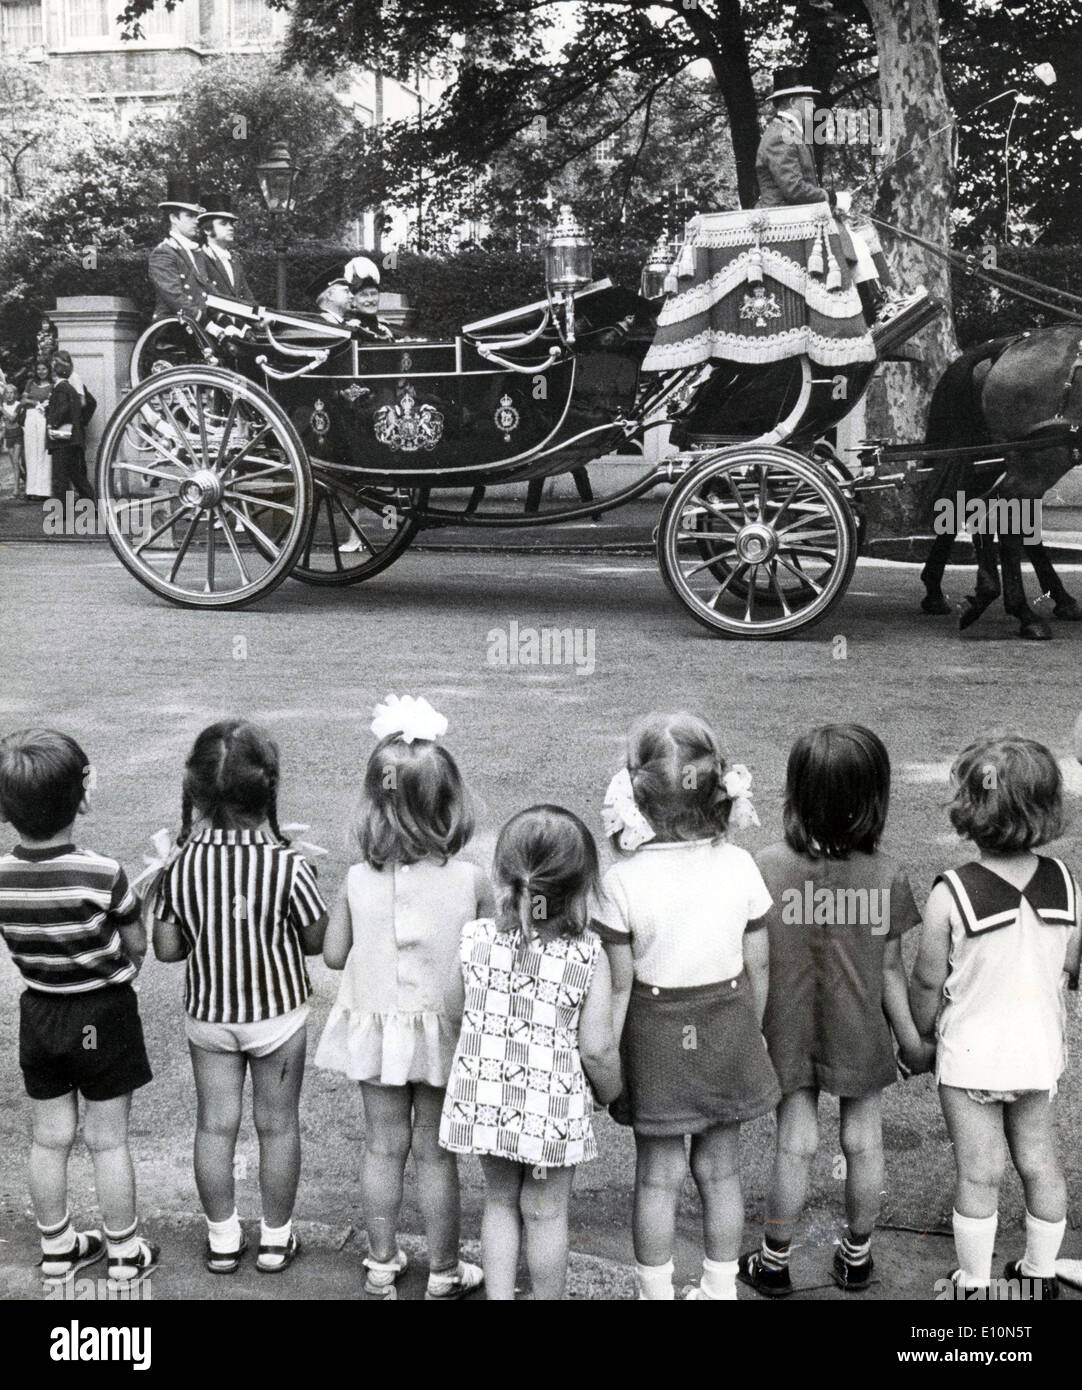 July 5, 1973 - London, England, U.K. - Russian children look on as NIKOLAI LUNKOV accompanied by the Marshal of the Diplomatic Corps MICHAEL FITZALAN-HOWARD, leaves the Soviet Embassy on the way to Buckingham Palace. - Stock Image